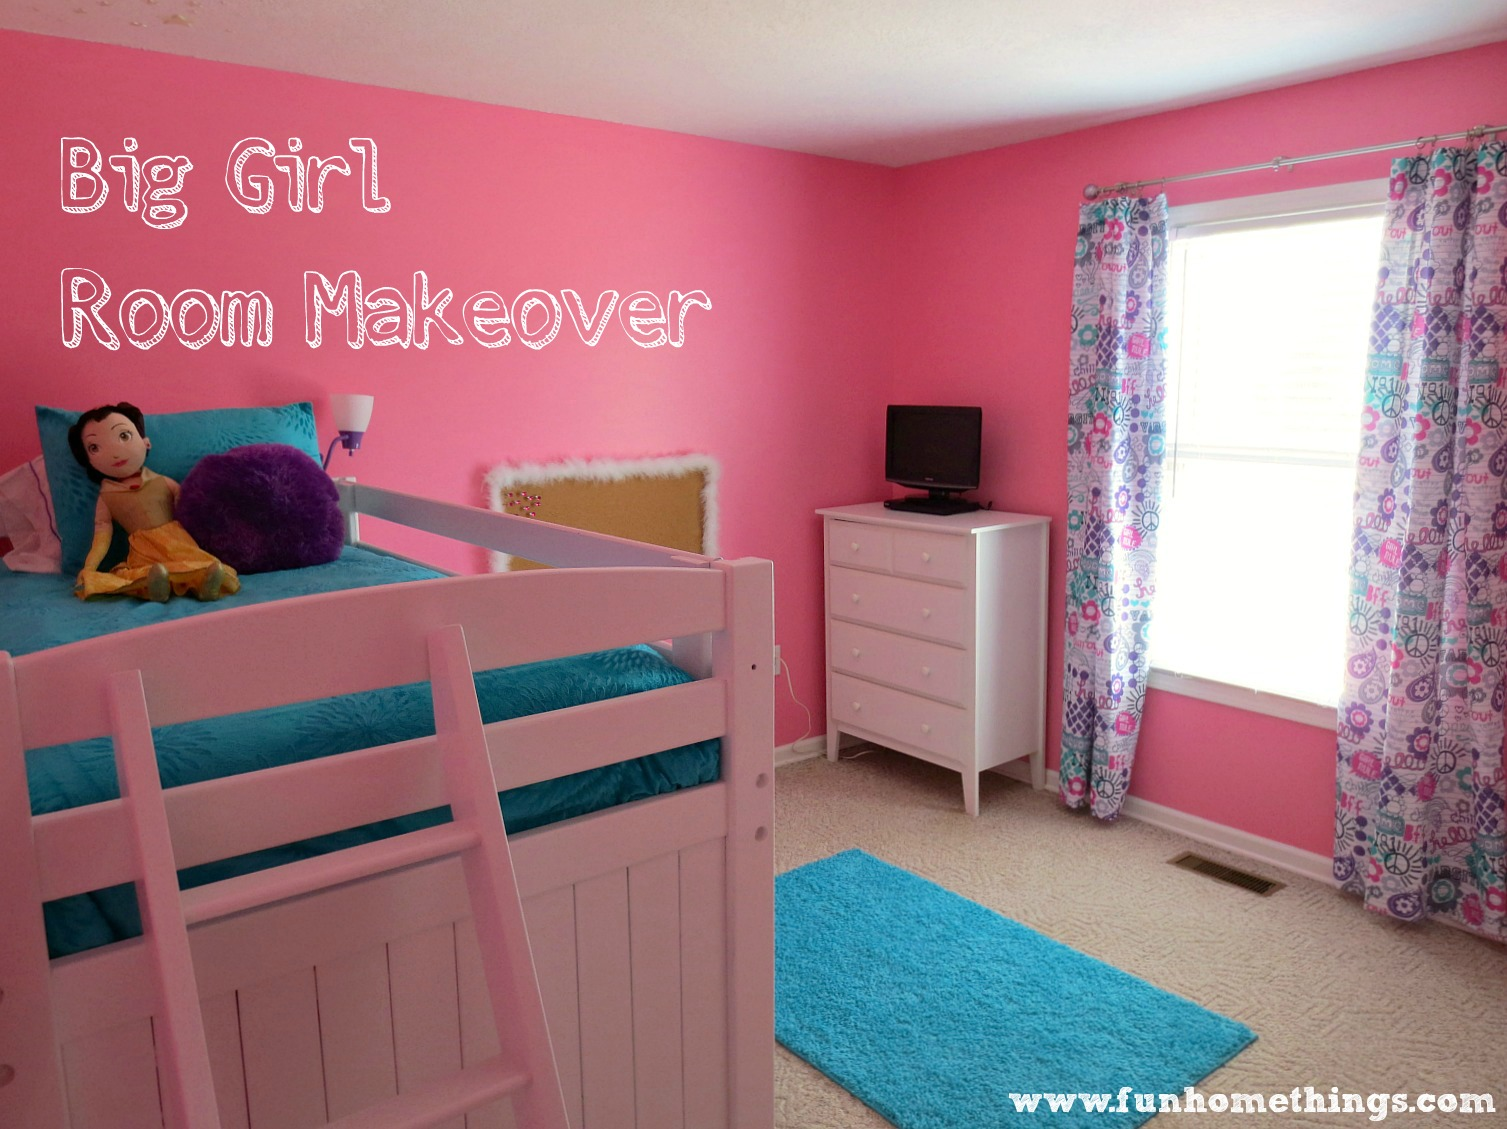 Room Makeovers Adorable Of Big Girl Room Makeover Photos